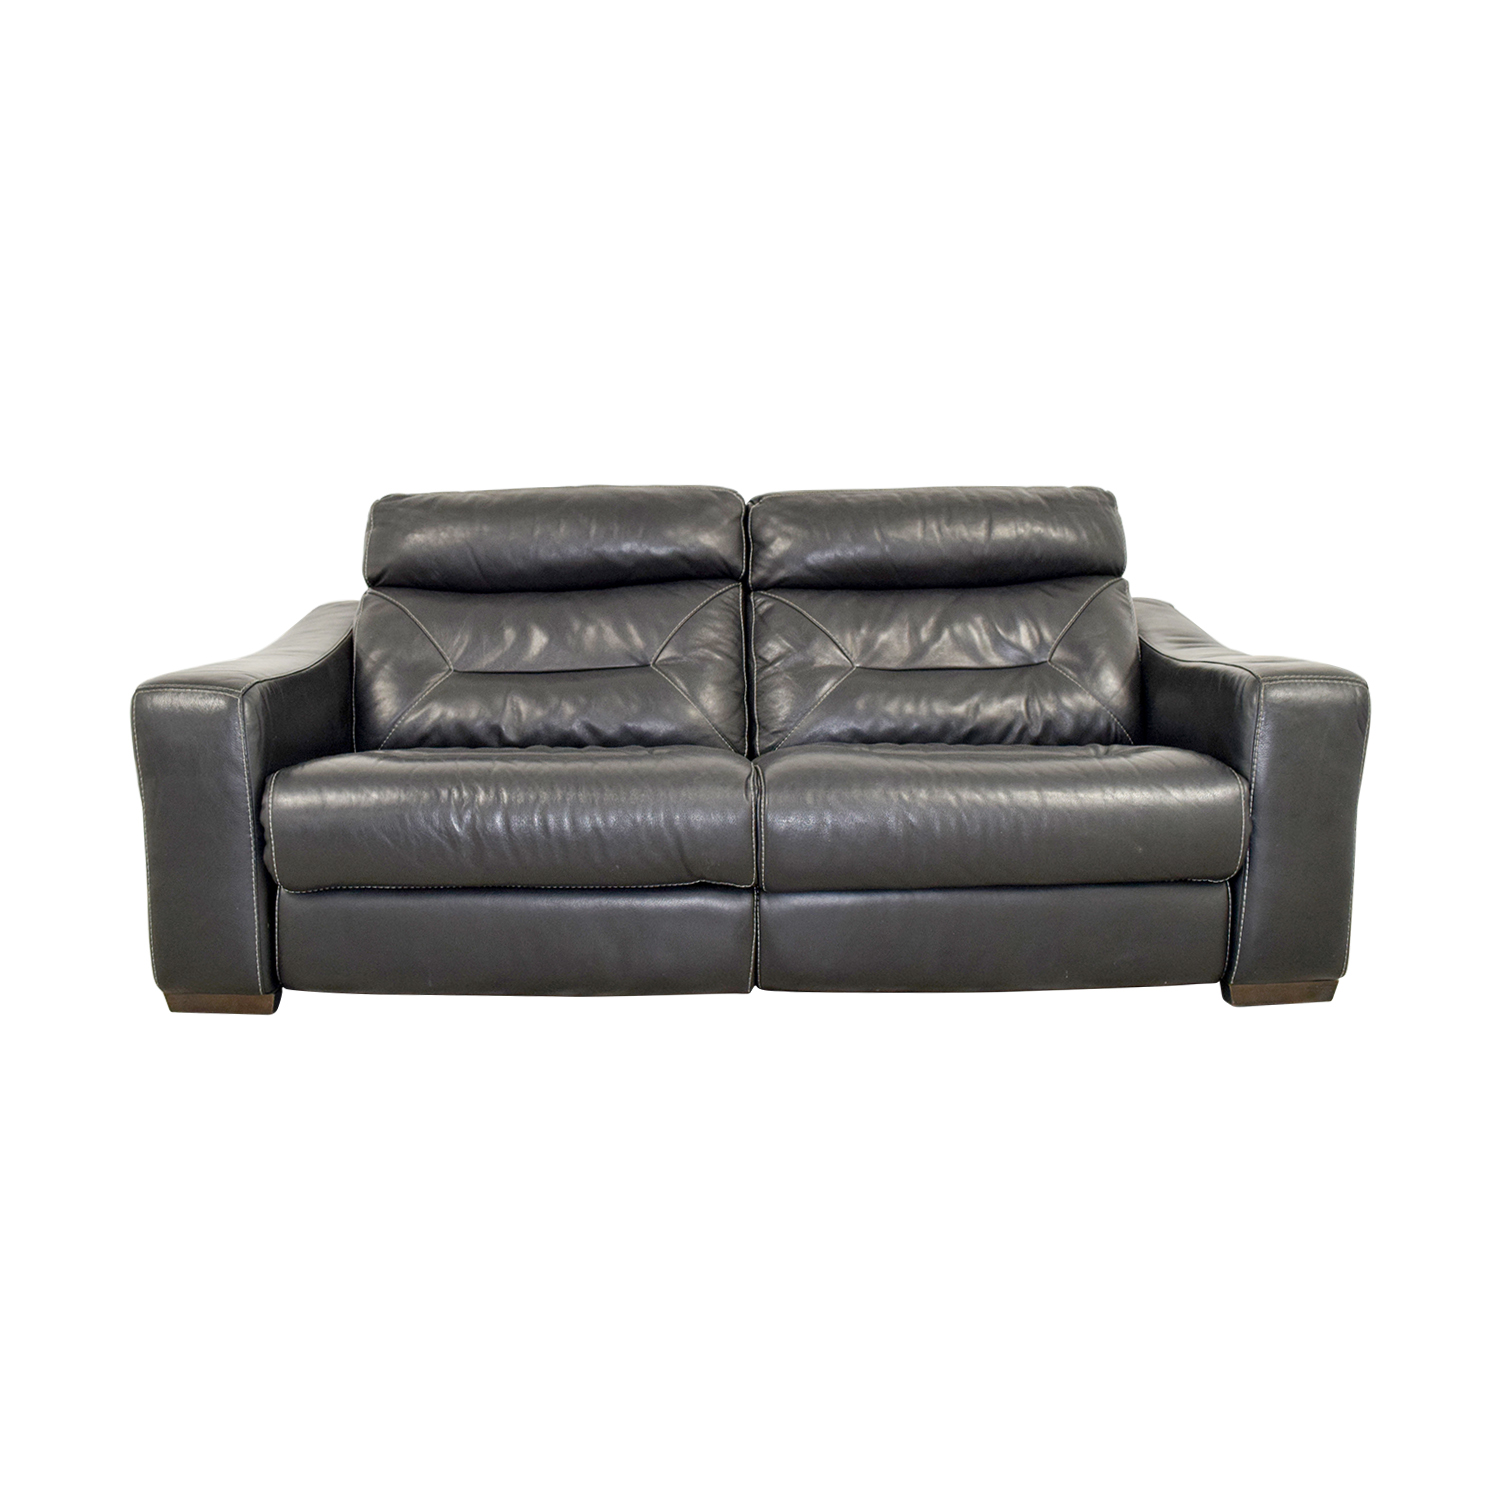 Leather Recliner Sofas For Sale   3 Seater Leather Sofa Fest Edge 3 ...